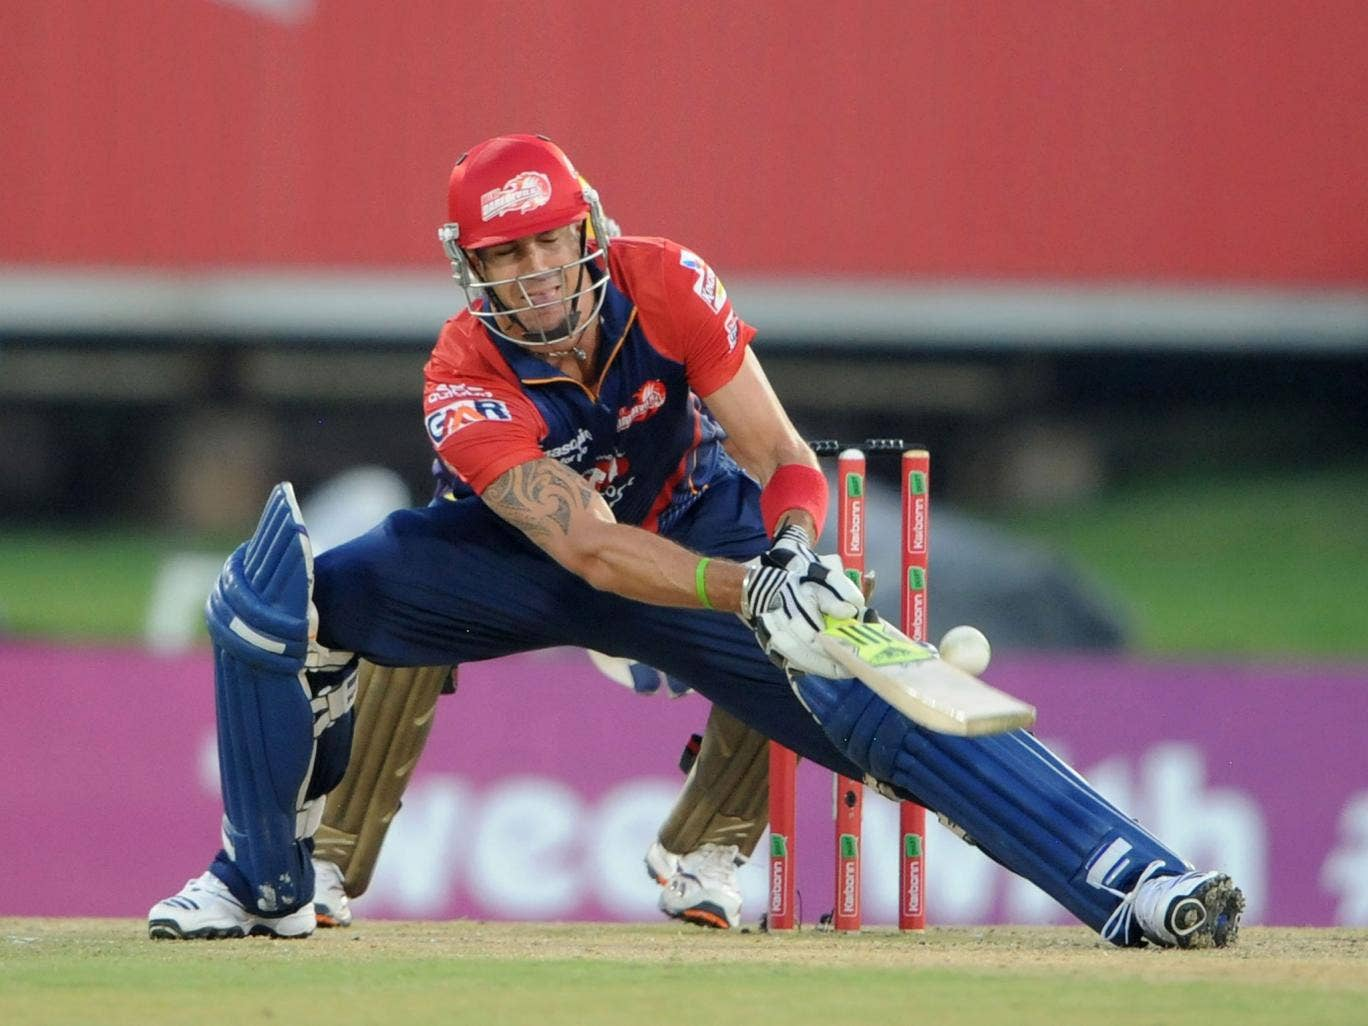 Kevin Pietersen is awaiting confirmation that he will be retained by the Delhi Daredevils for this year's IPL